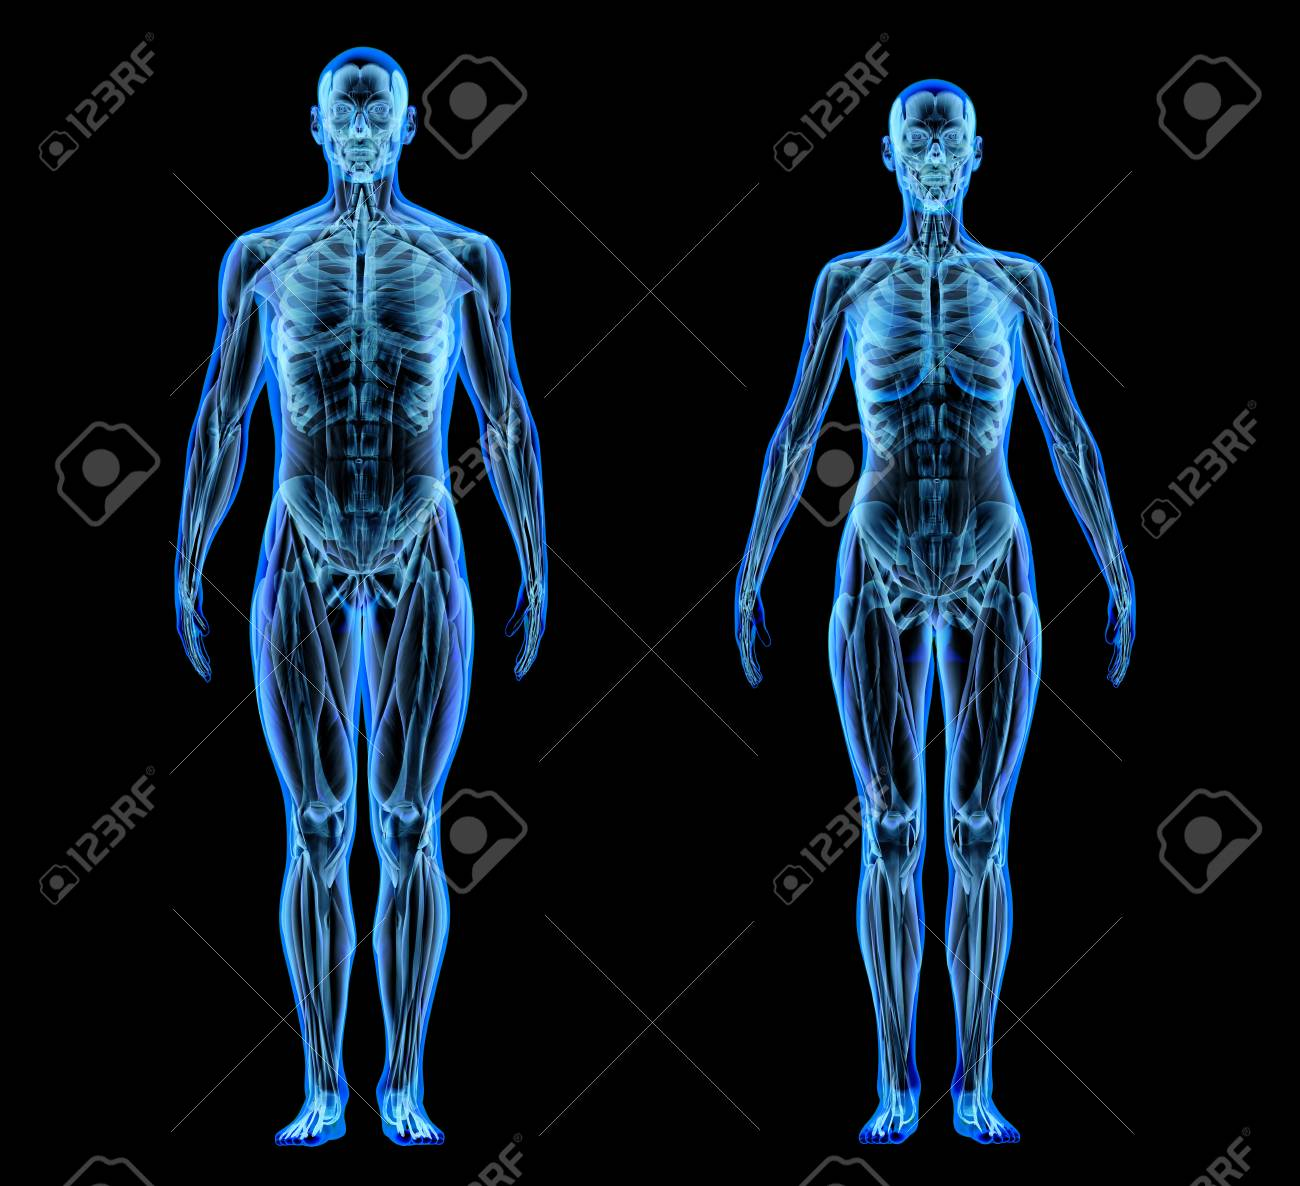 Man and woman muscle and skeletal systems. X-ray effect on black background. - 120522797